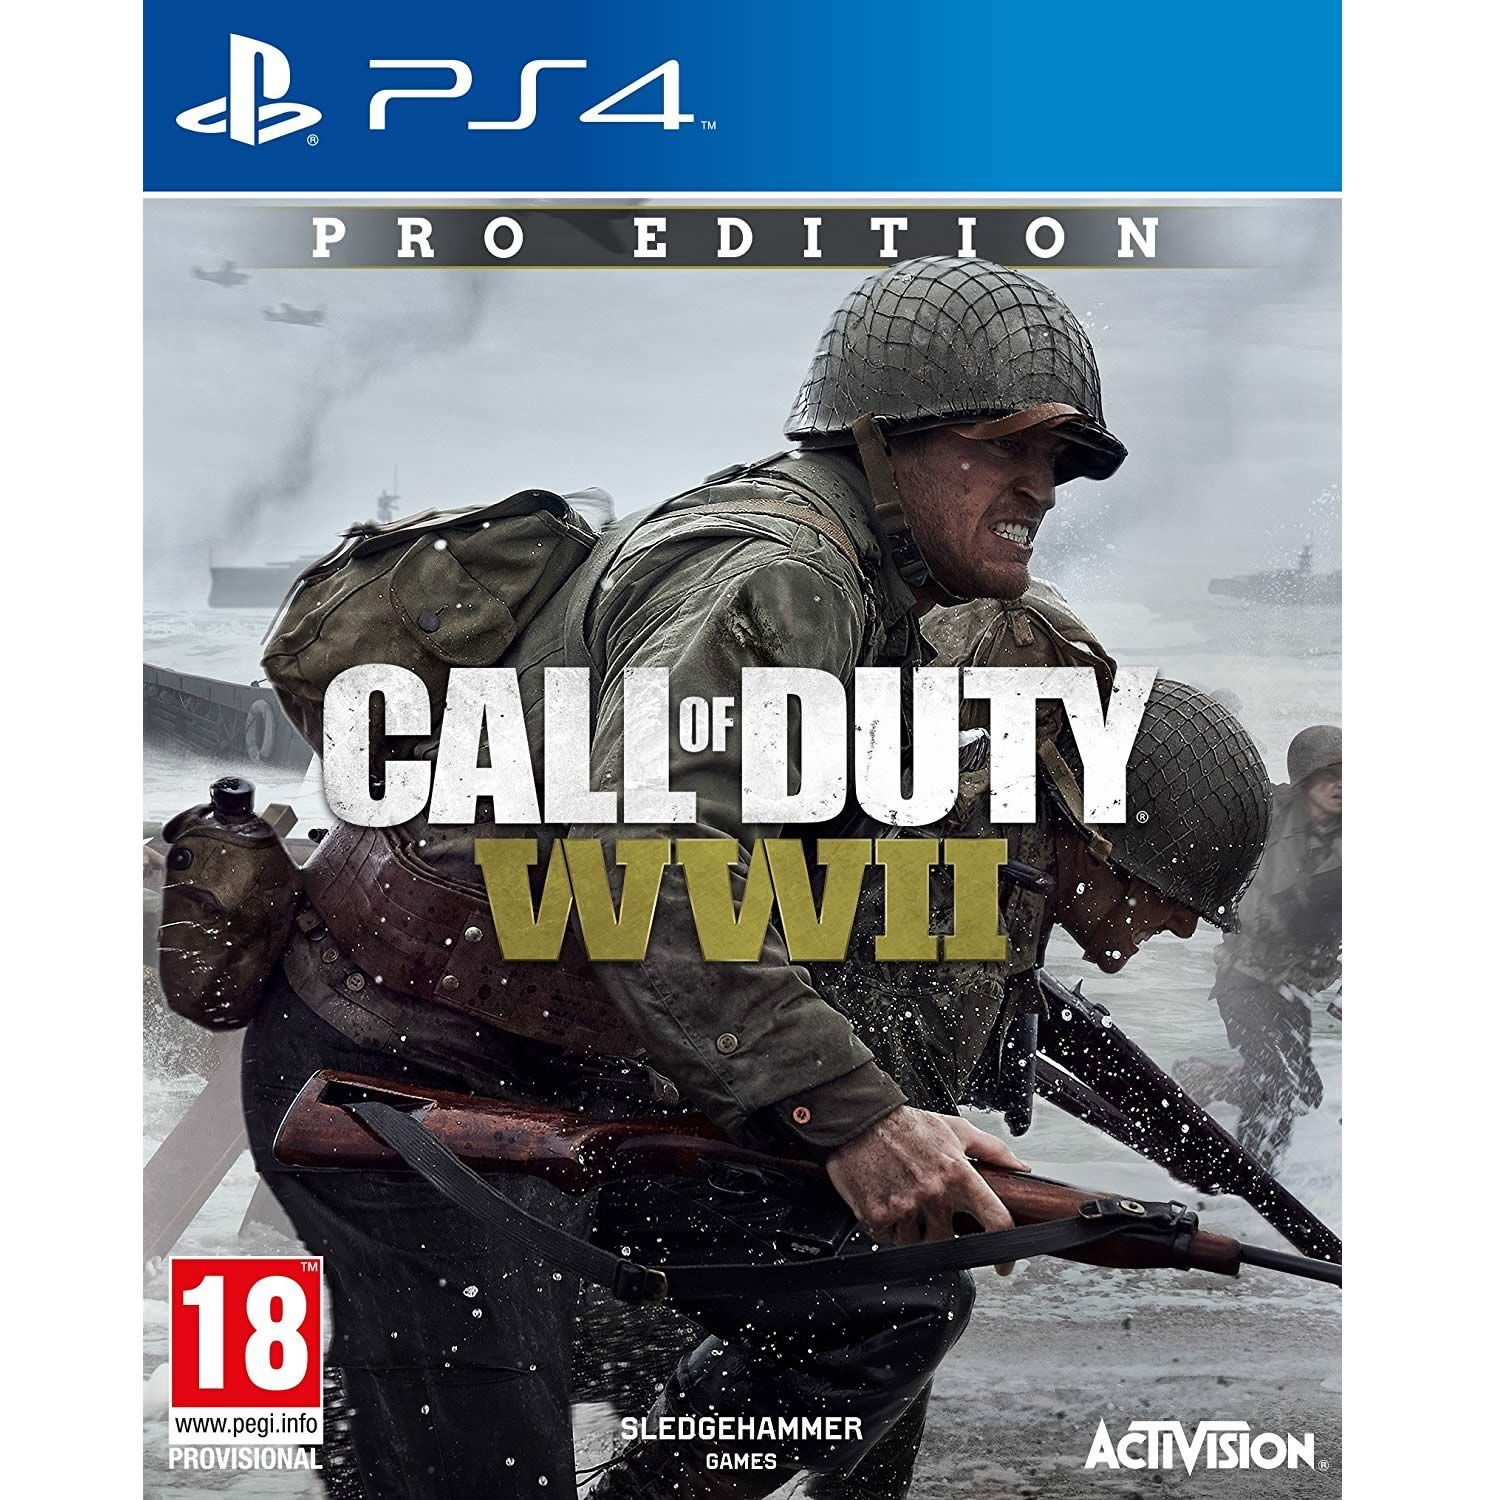 call of duty wwii pro edition ps4 hd. Black Bedroom Furniture Sets. Home Design Ideas